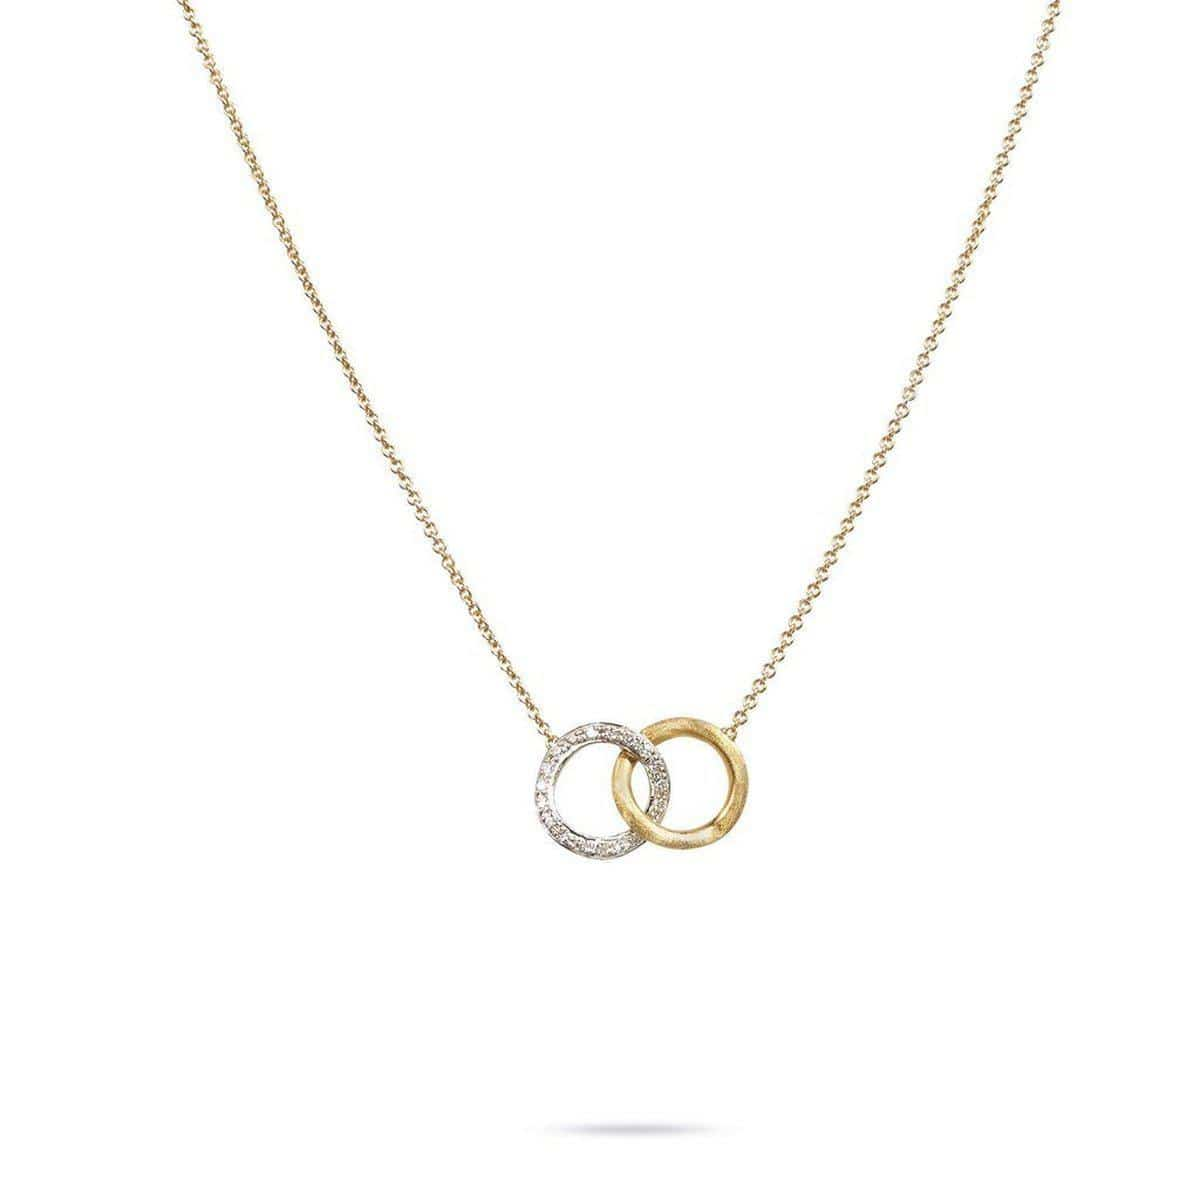 18K Delicati Necklace - CB1803 B YW 16.5""